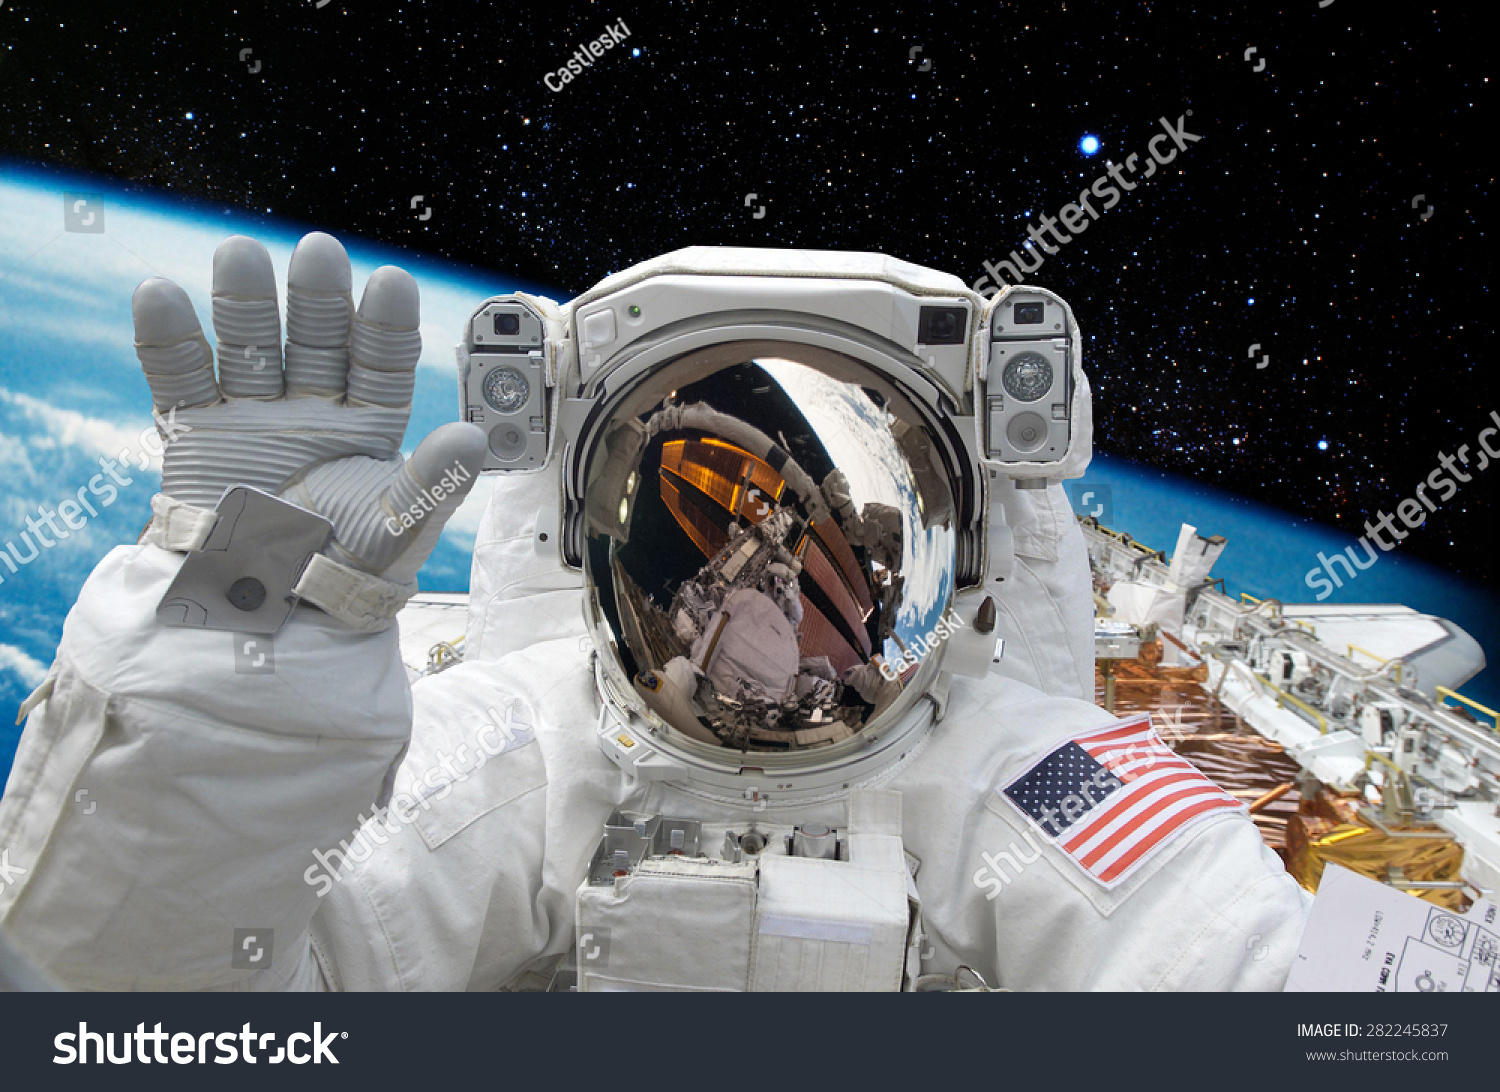 Astronaut On Space Mission Earth On Stock Photo 282245837